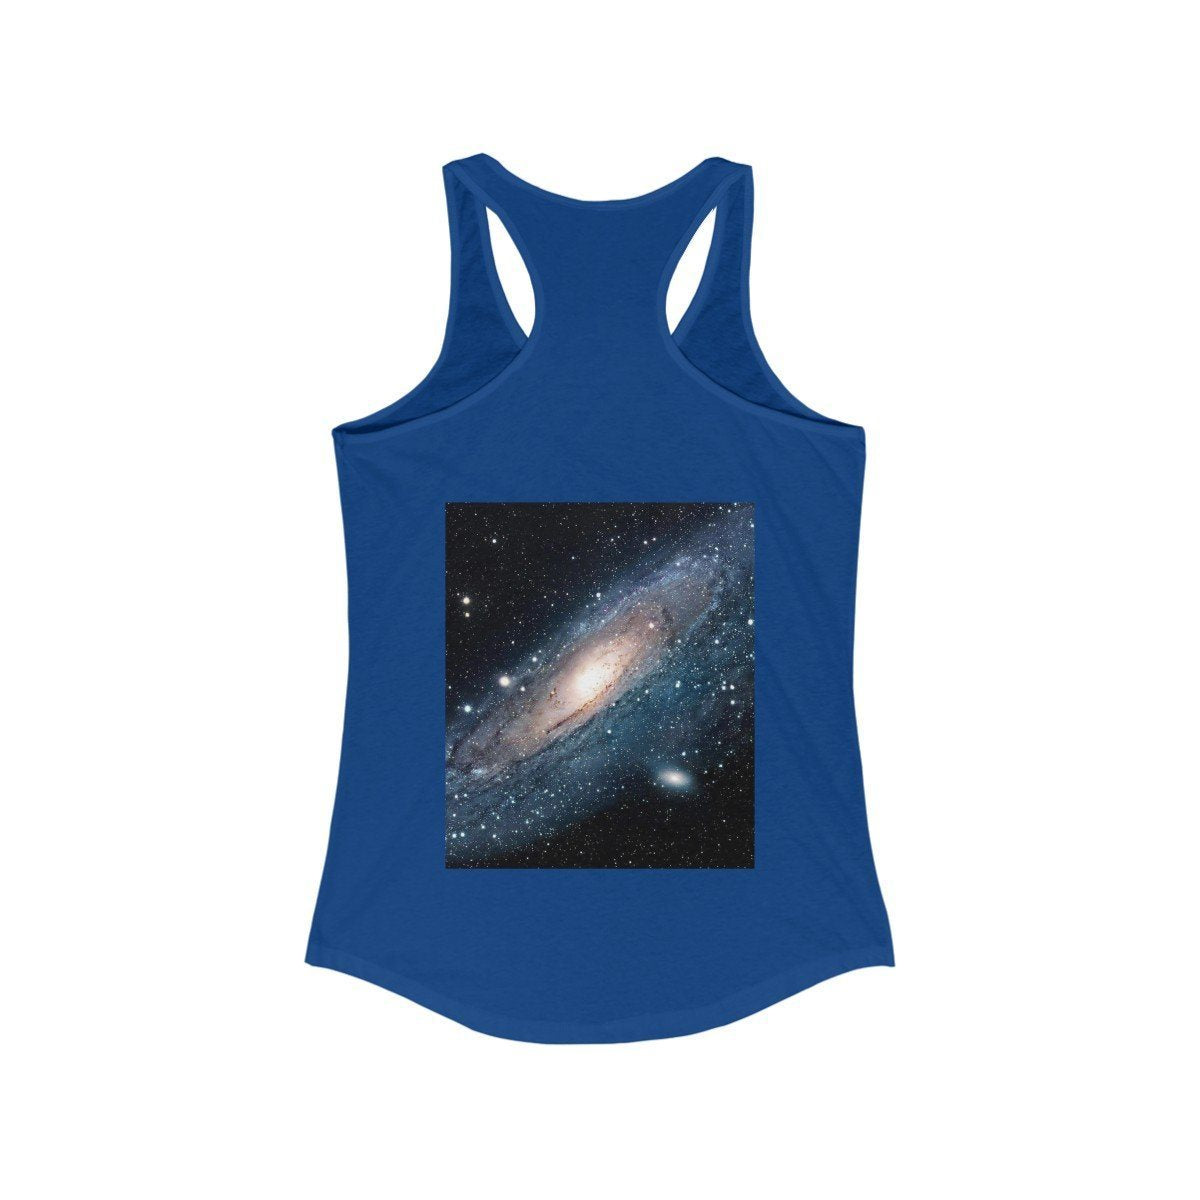 Women's Ideal Racerback Tank -The Andromeda galaxy - closest to the Earth at 2.5 million light-years - NASA image Tank Top Printify